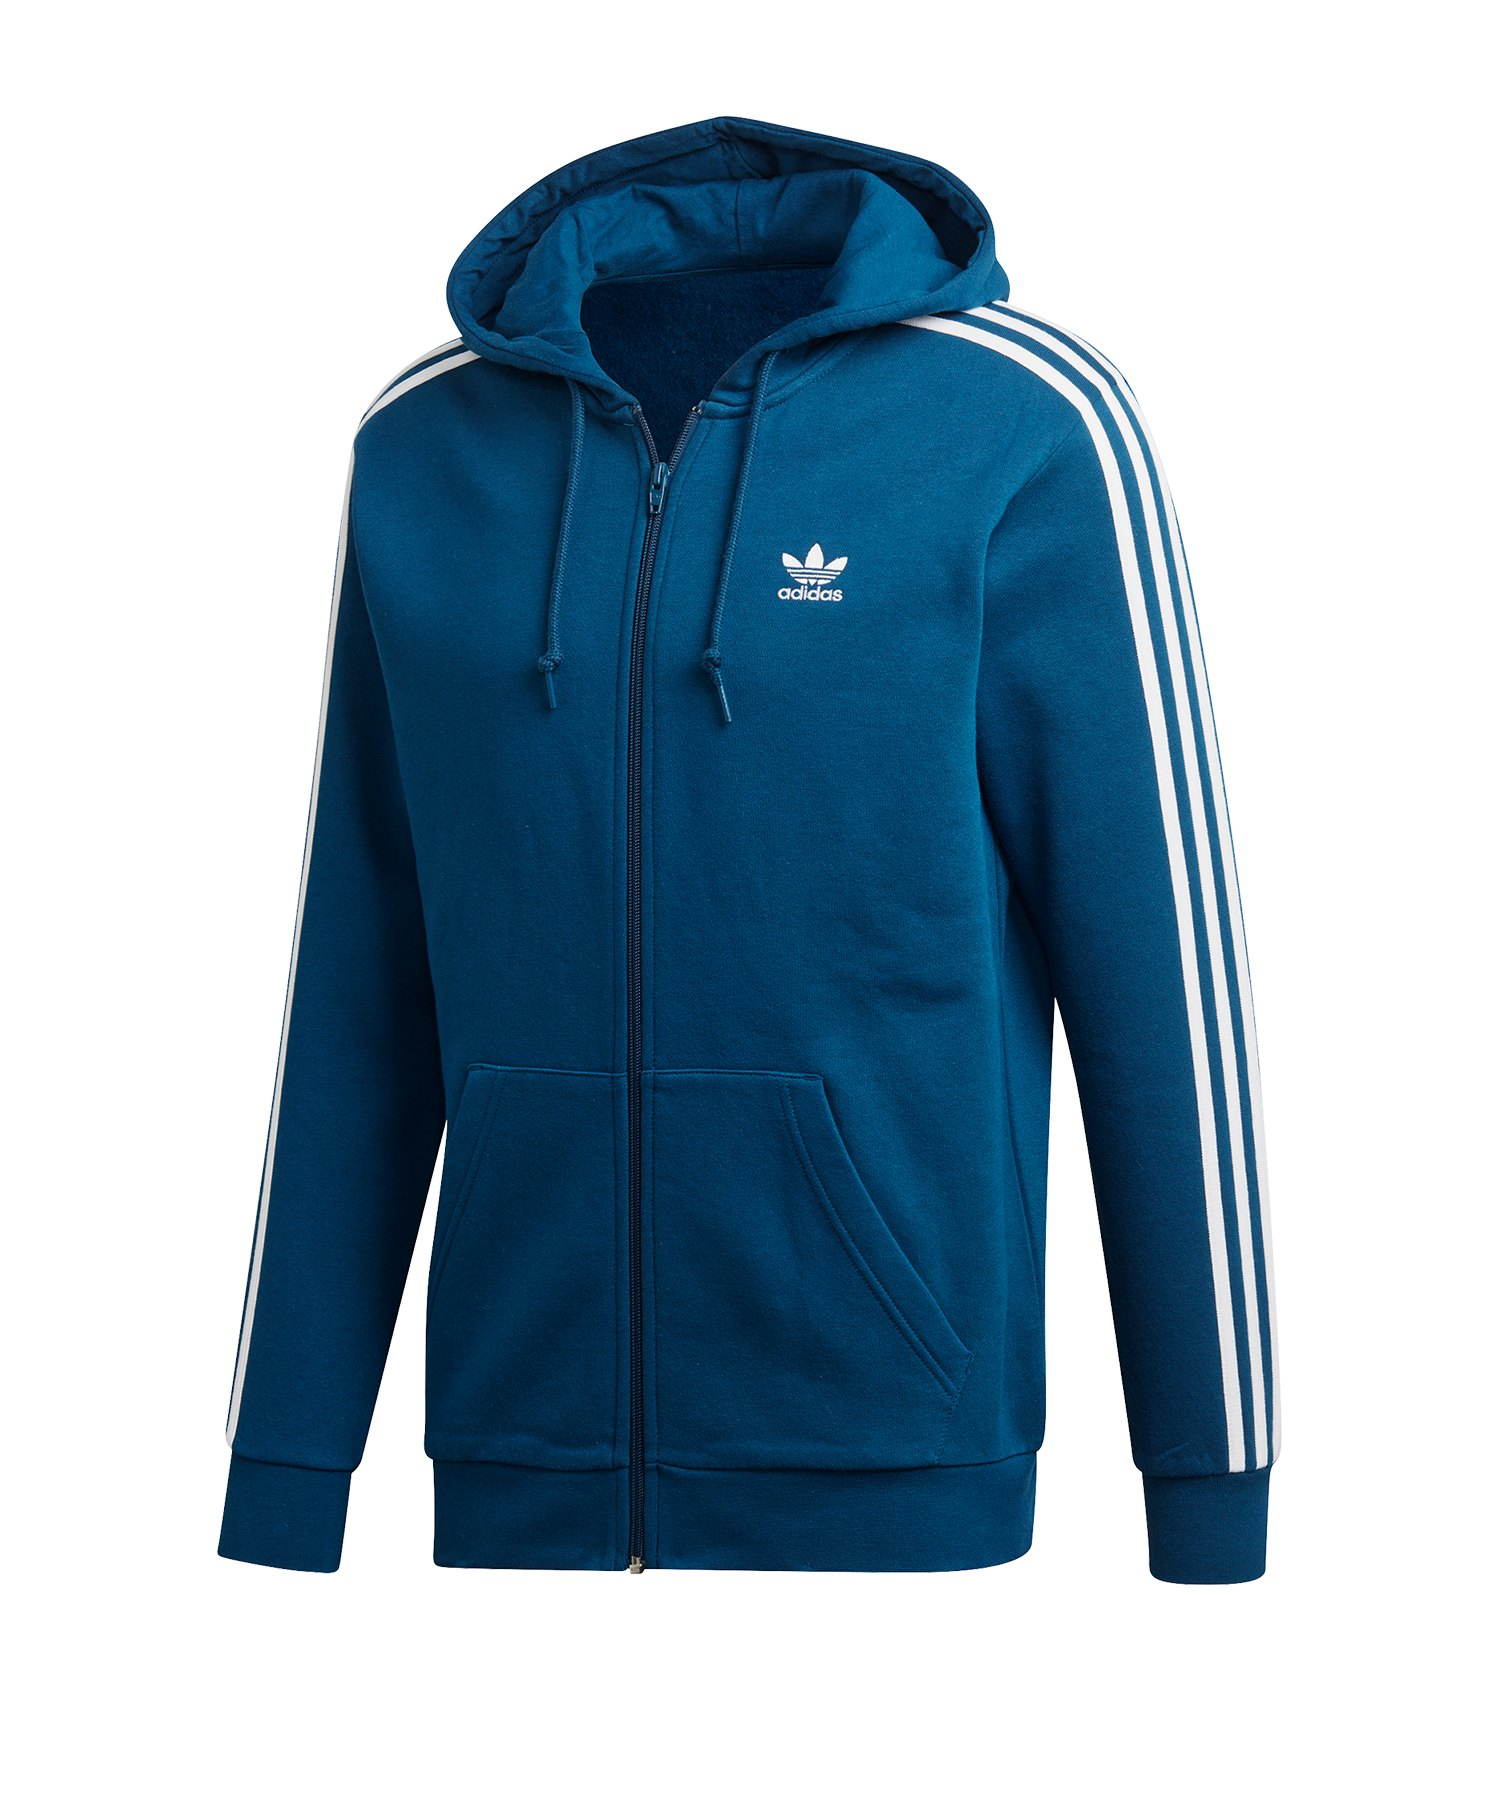 adidas Originals 3 Stripes Kapuzenjacke Blau